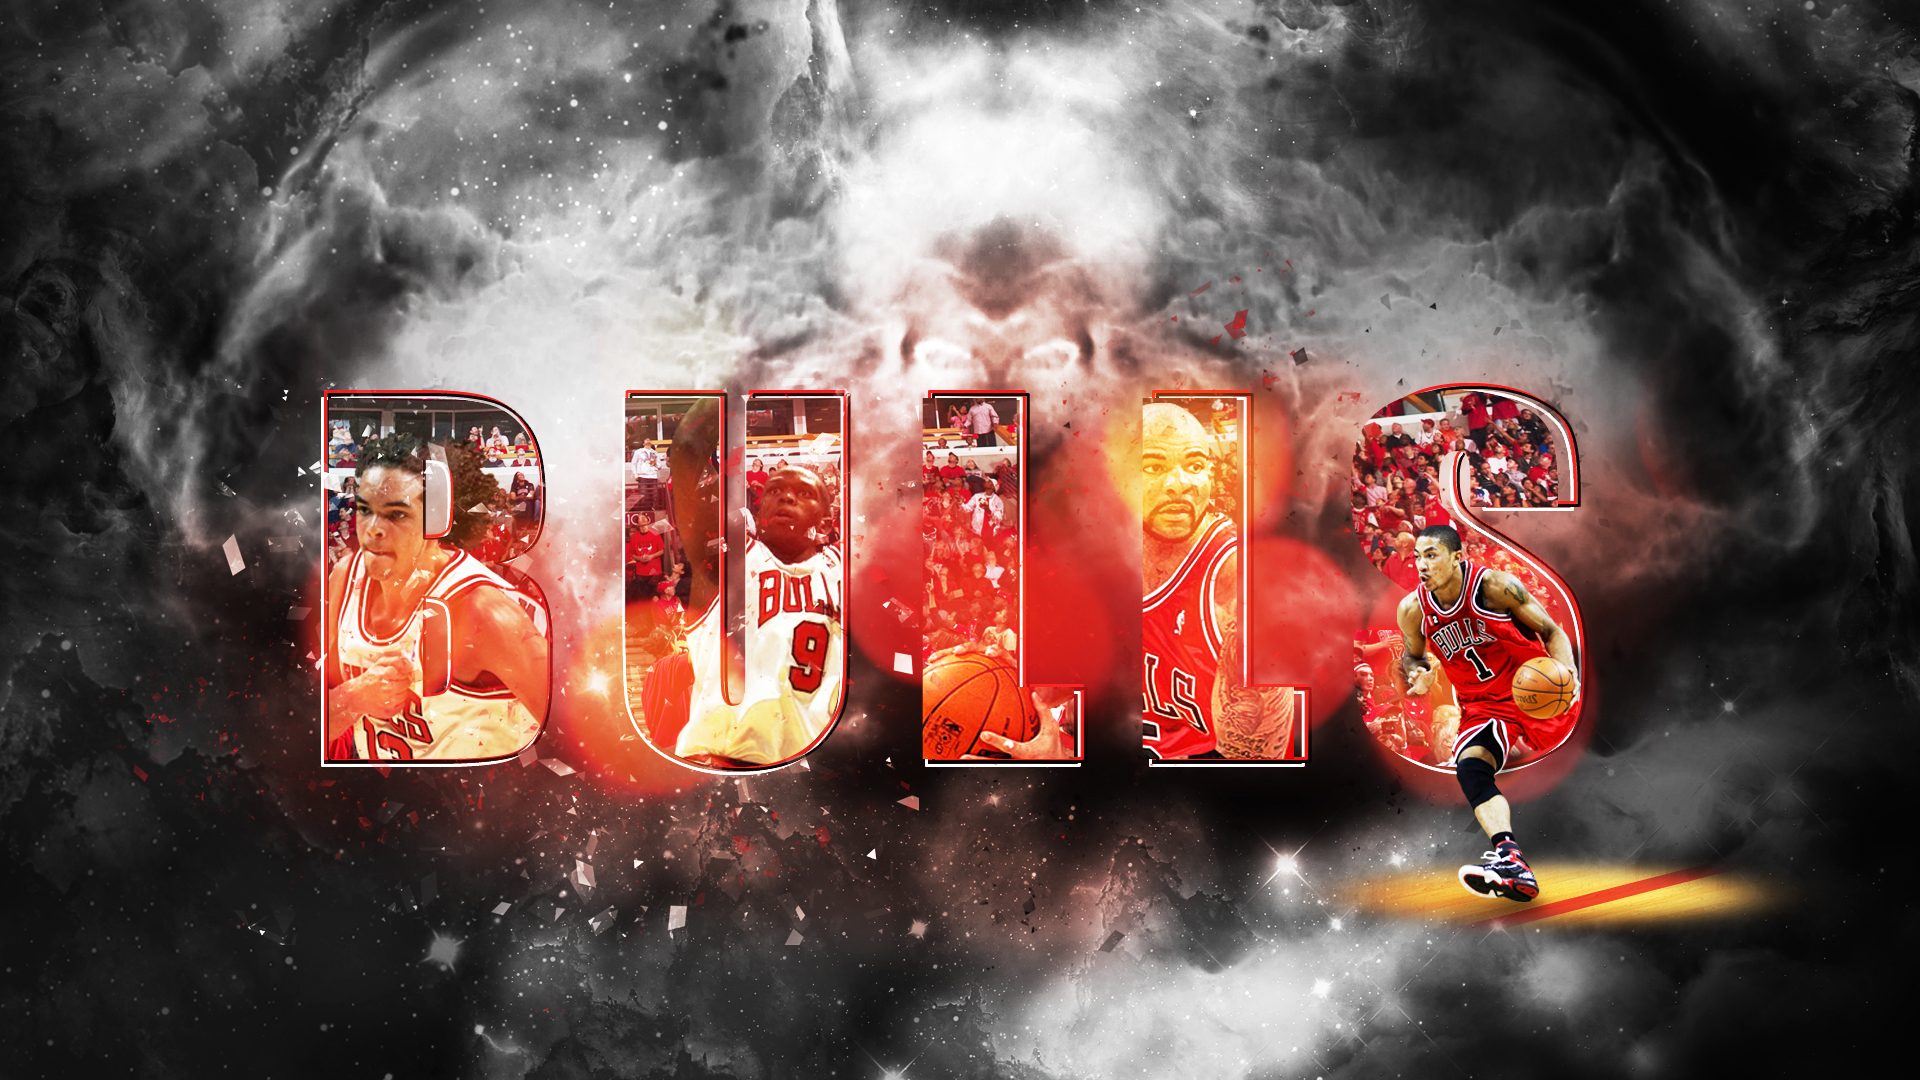 Derrick Rose Wallpaper Hd 2013 wallpaper   465320 1920x1080